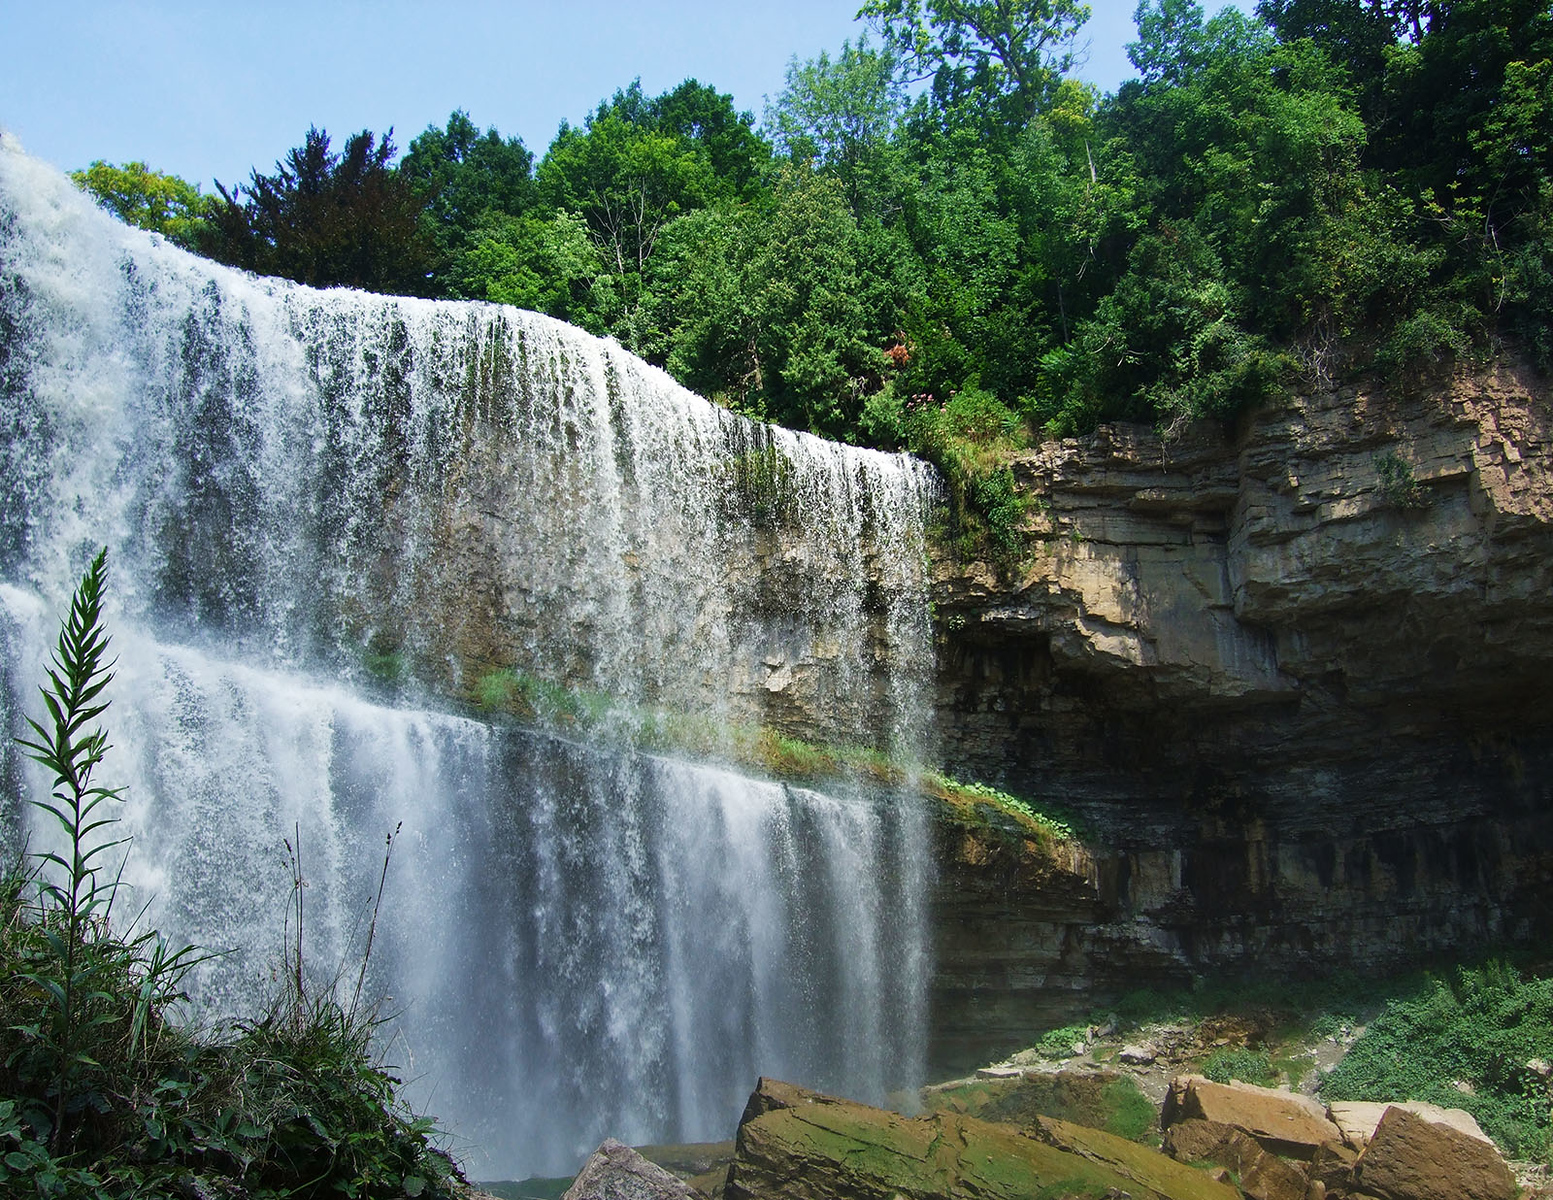 An Insider's Guide to Hiking the Dundas Peak & Tews Falls - Websters Falls from the bottom